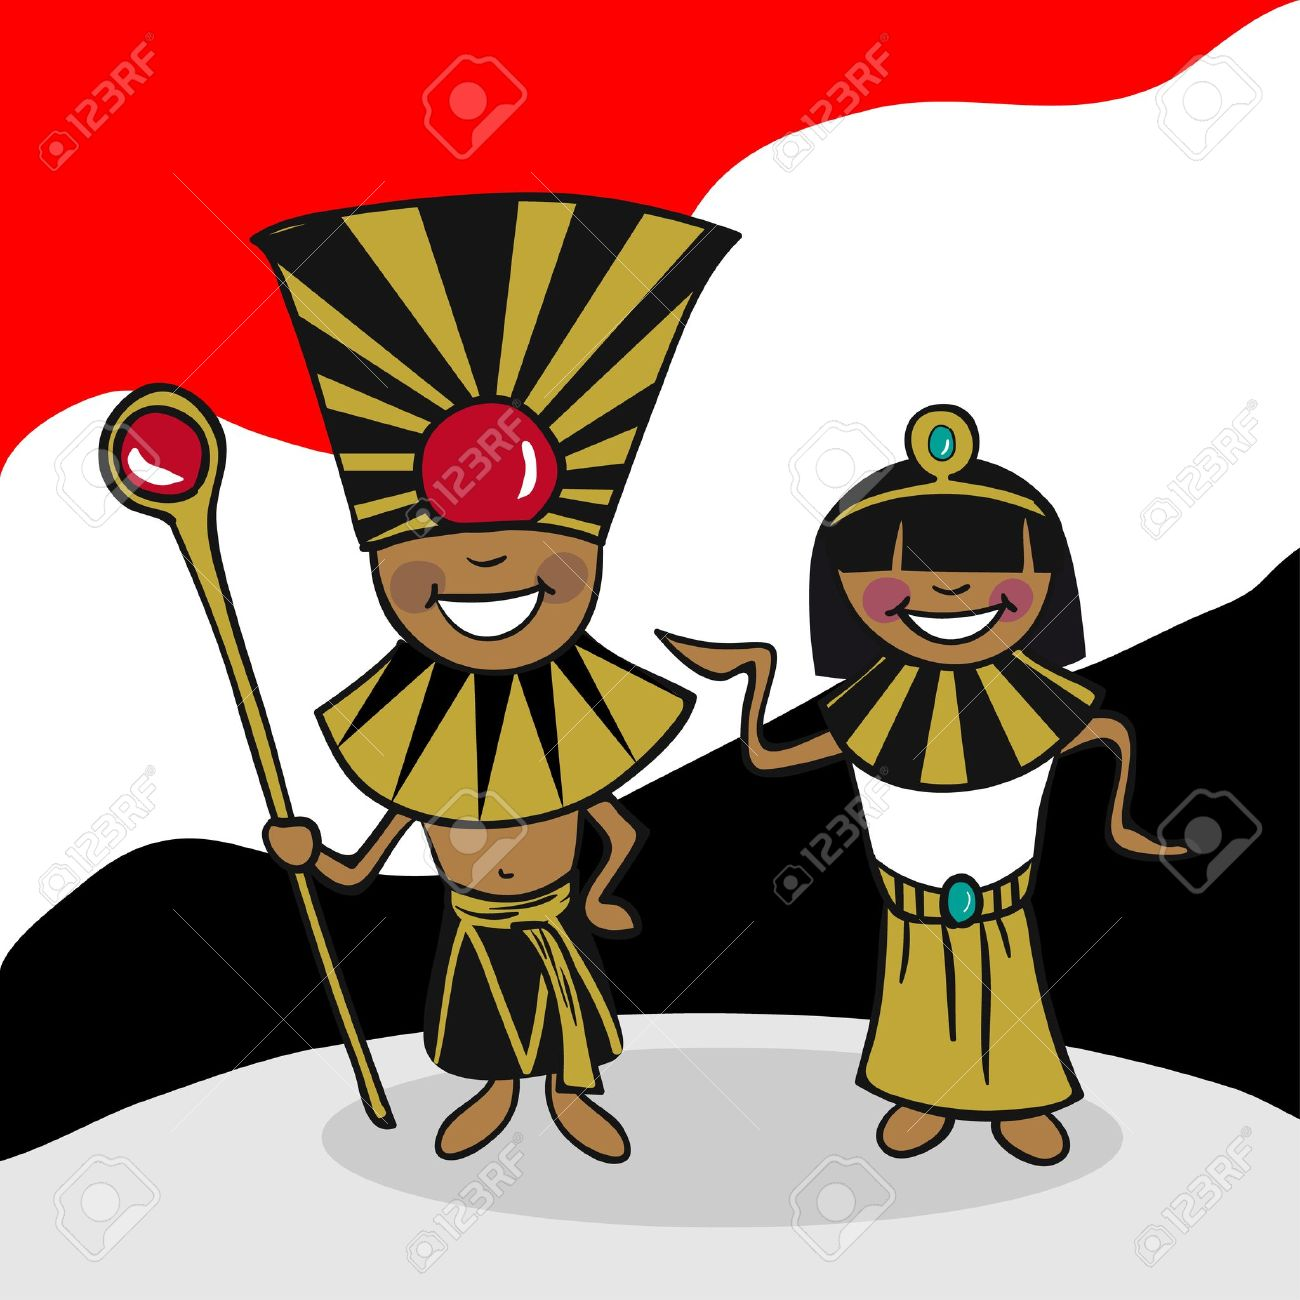 Egyptian man and woman cartoon couple with national flag background. Vector illustration layered for easy editing. Stock Vector - 20602854